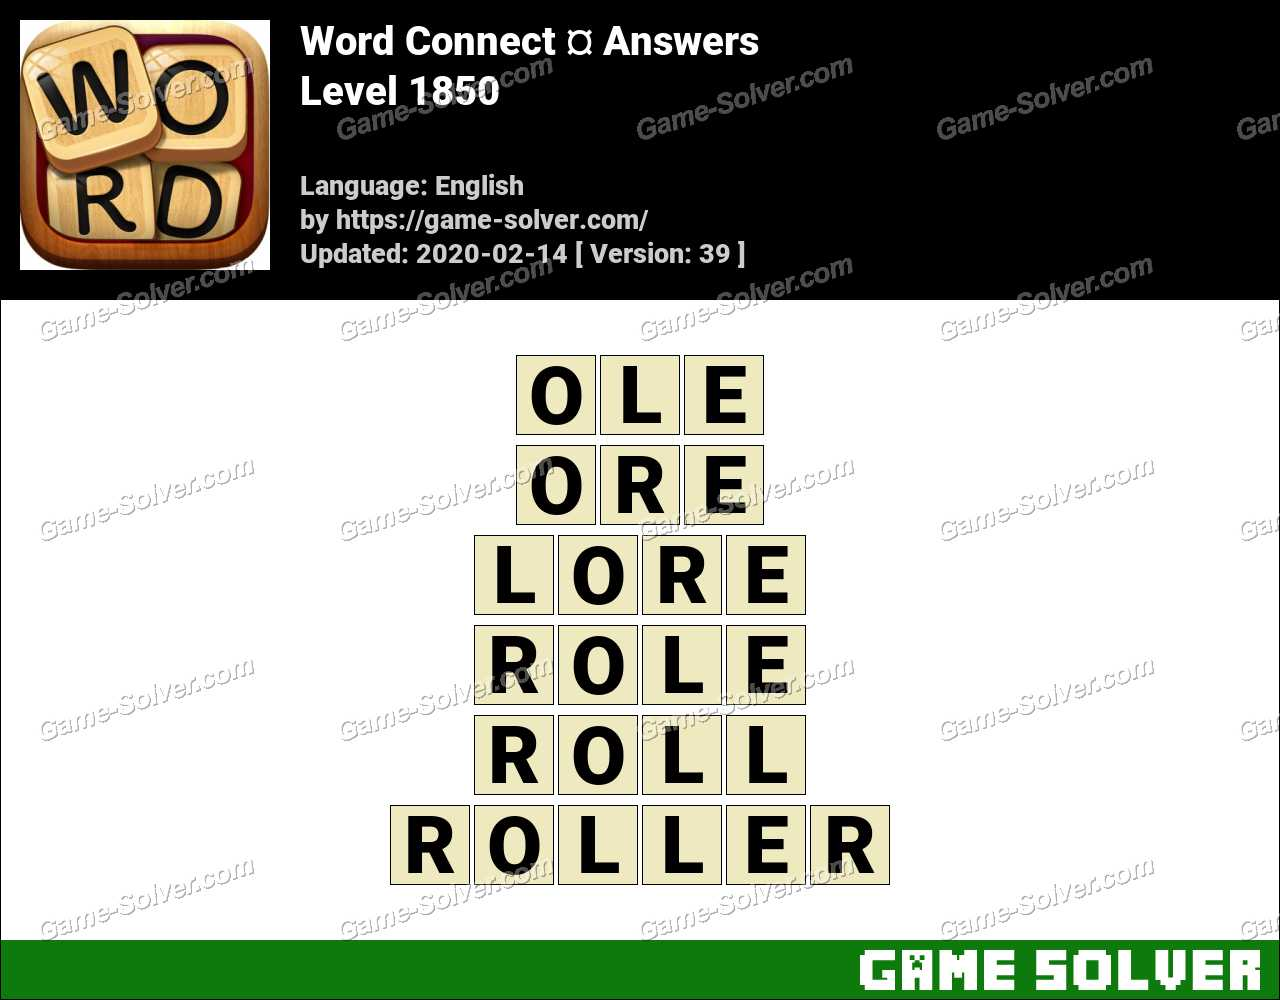 Word Connect Level 1850 Answers